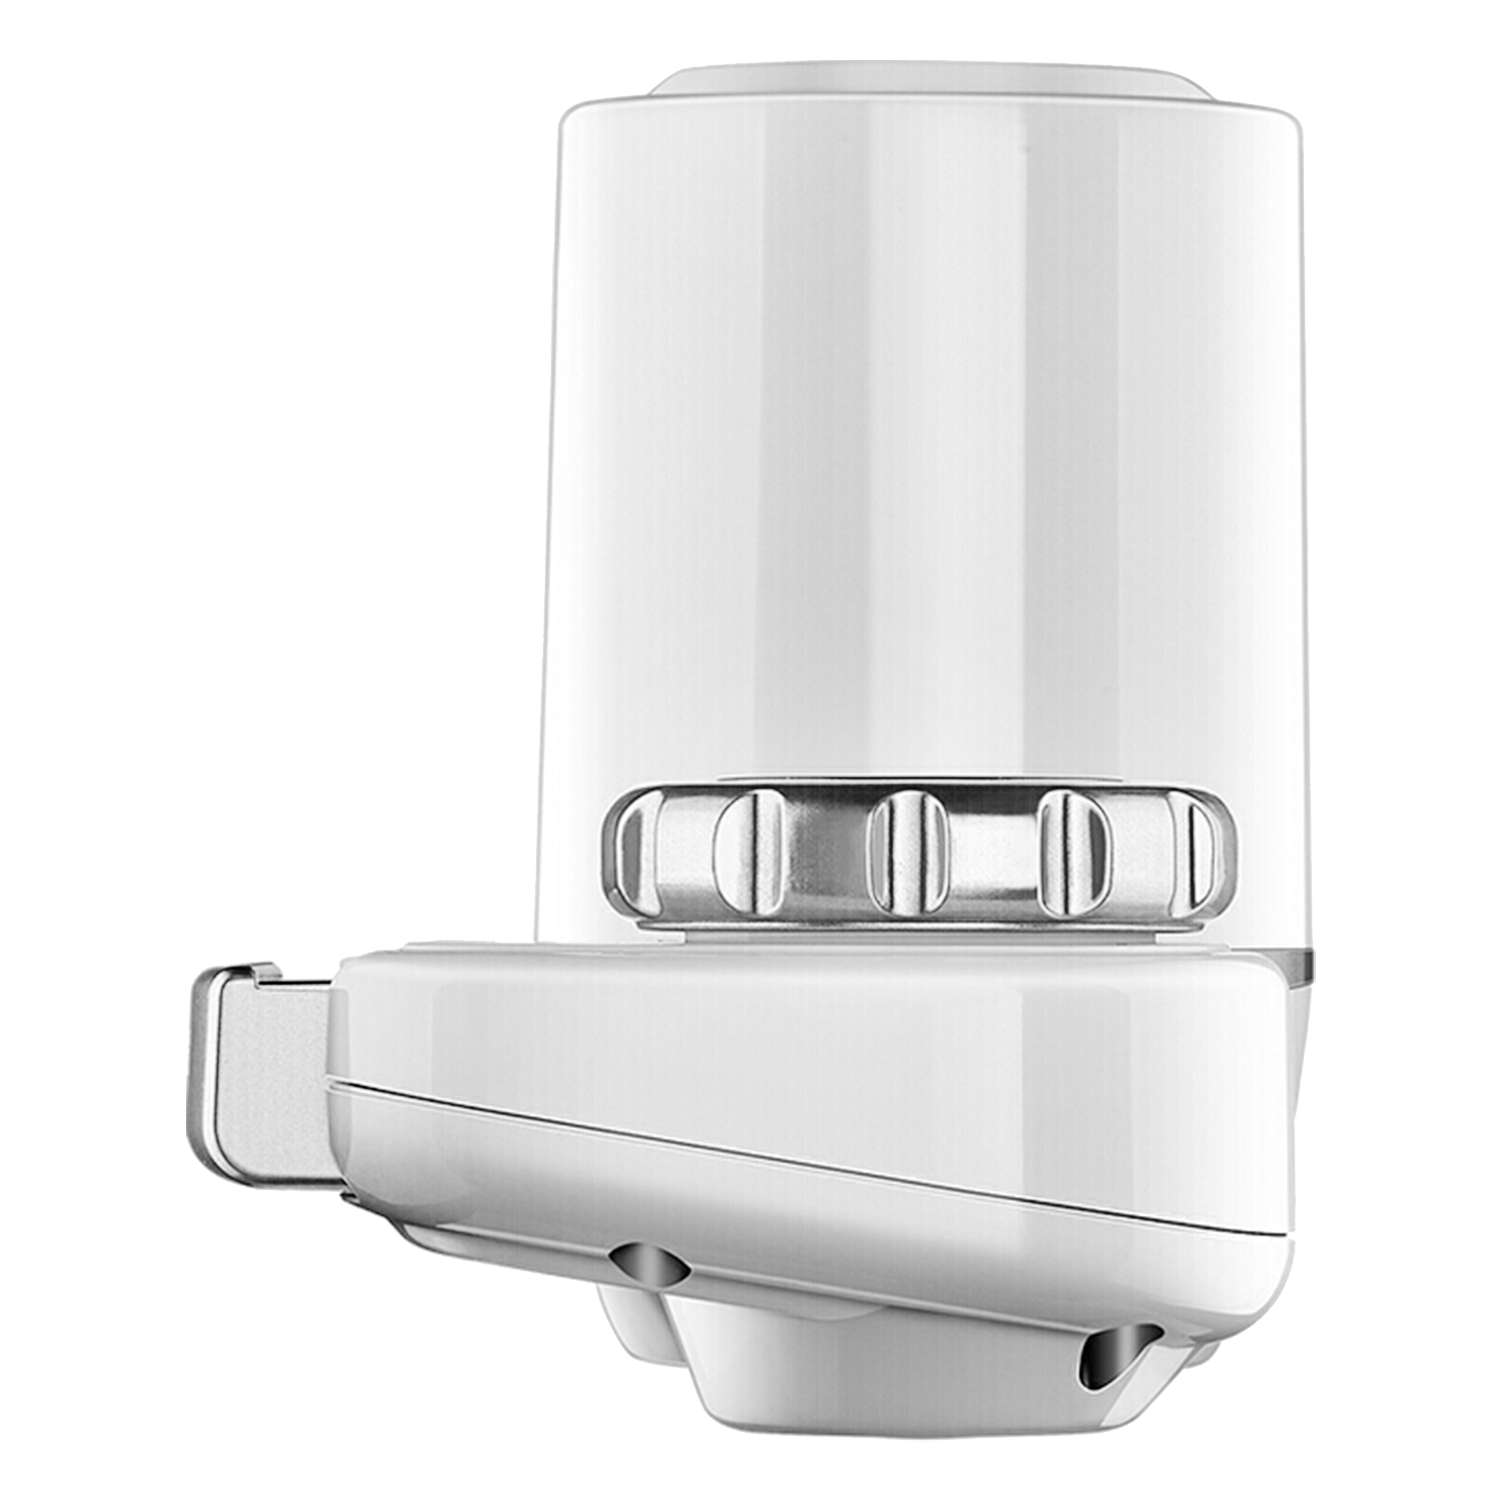 Ultra Filtration Long-Lasting Water Faucet Filtration System